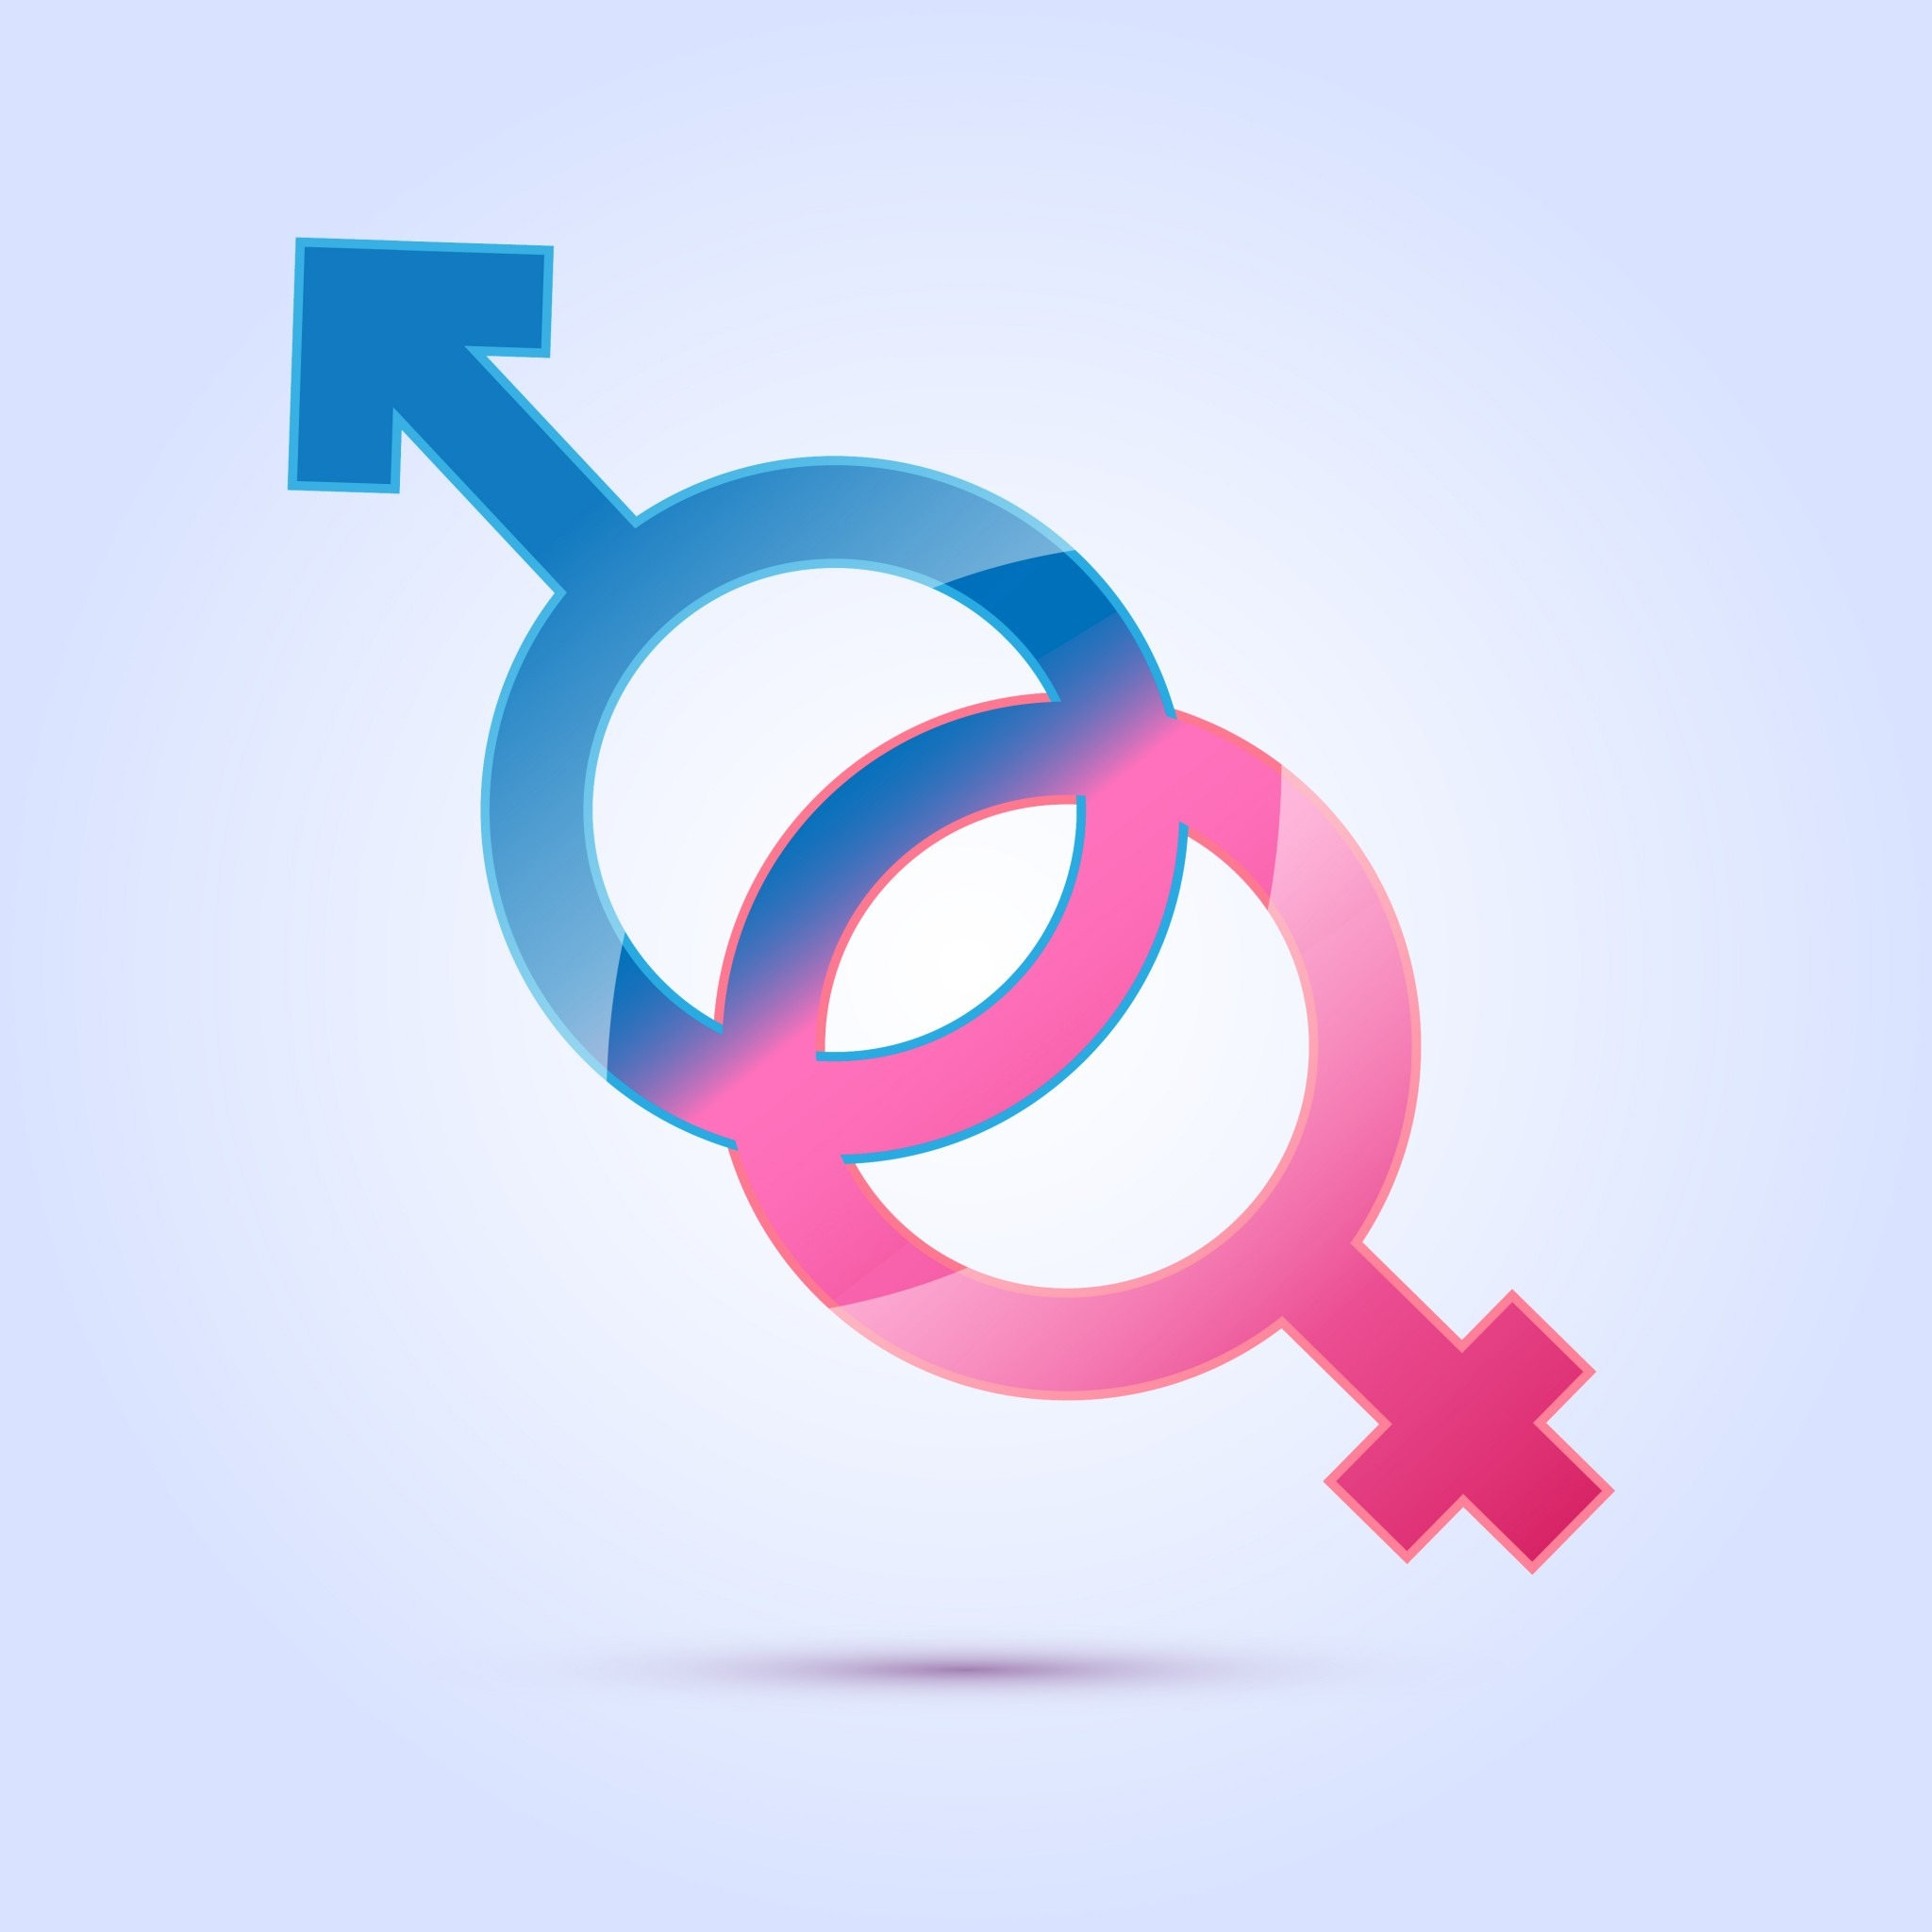 Gender Stereotypes: Pink and Blue